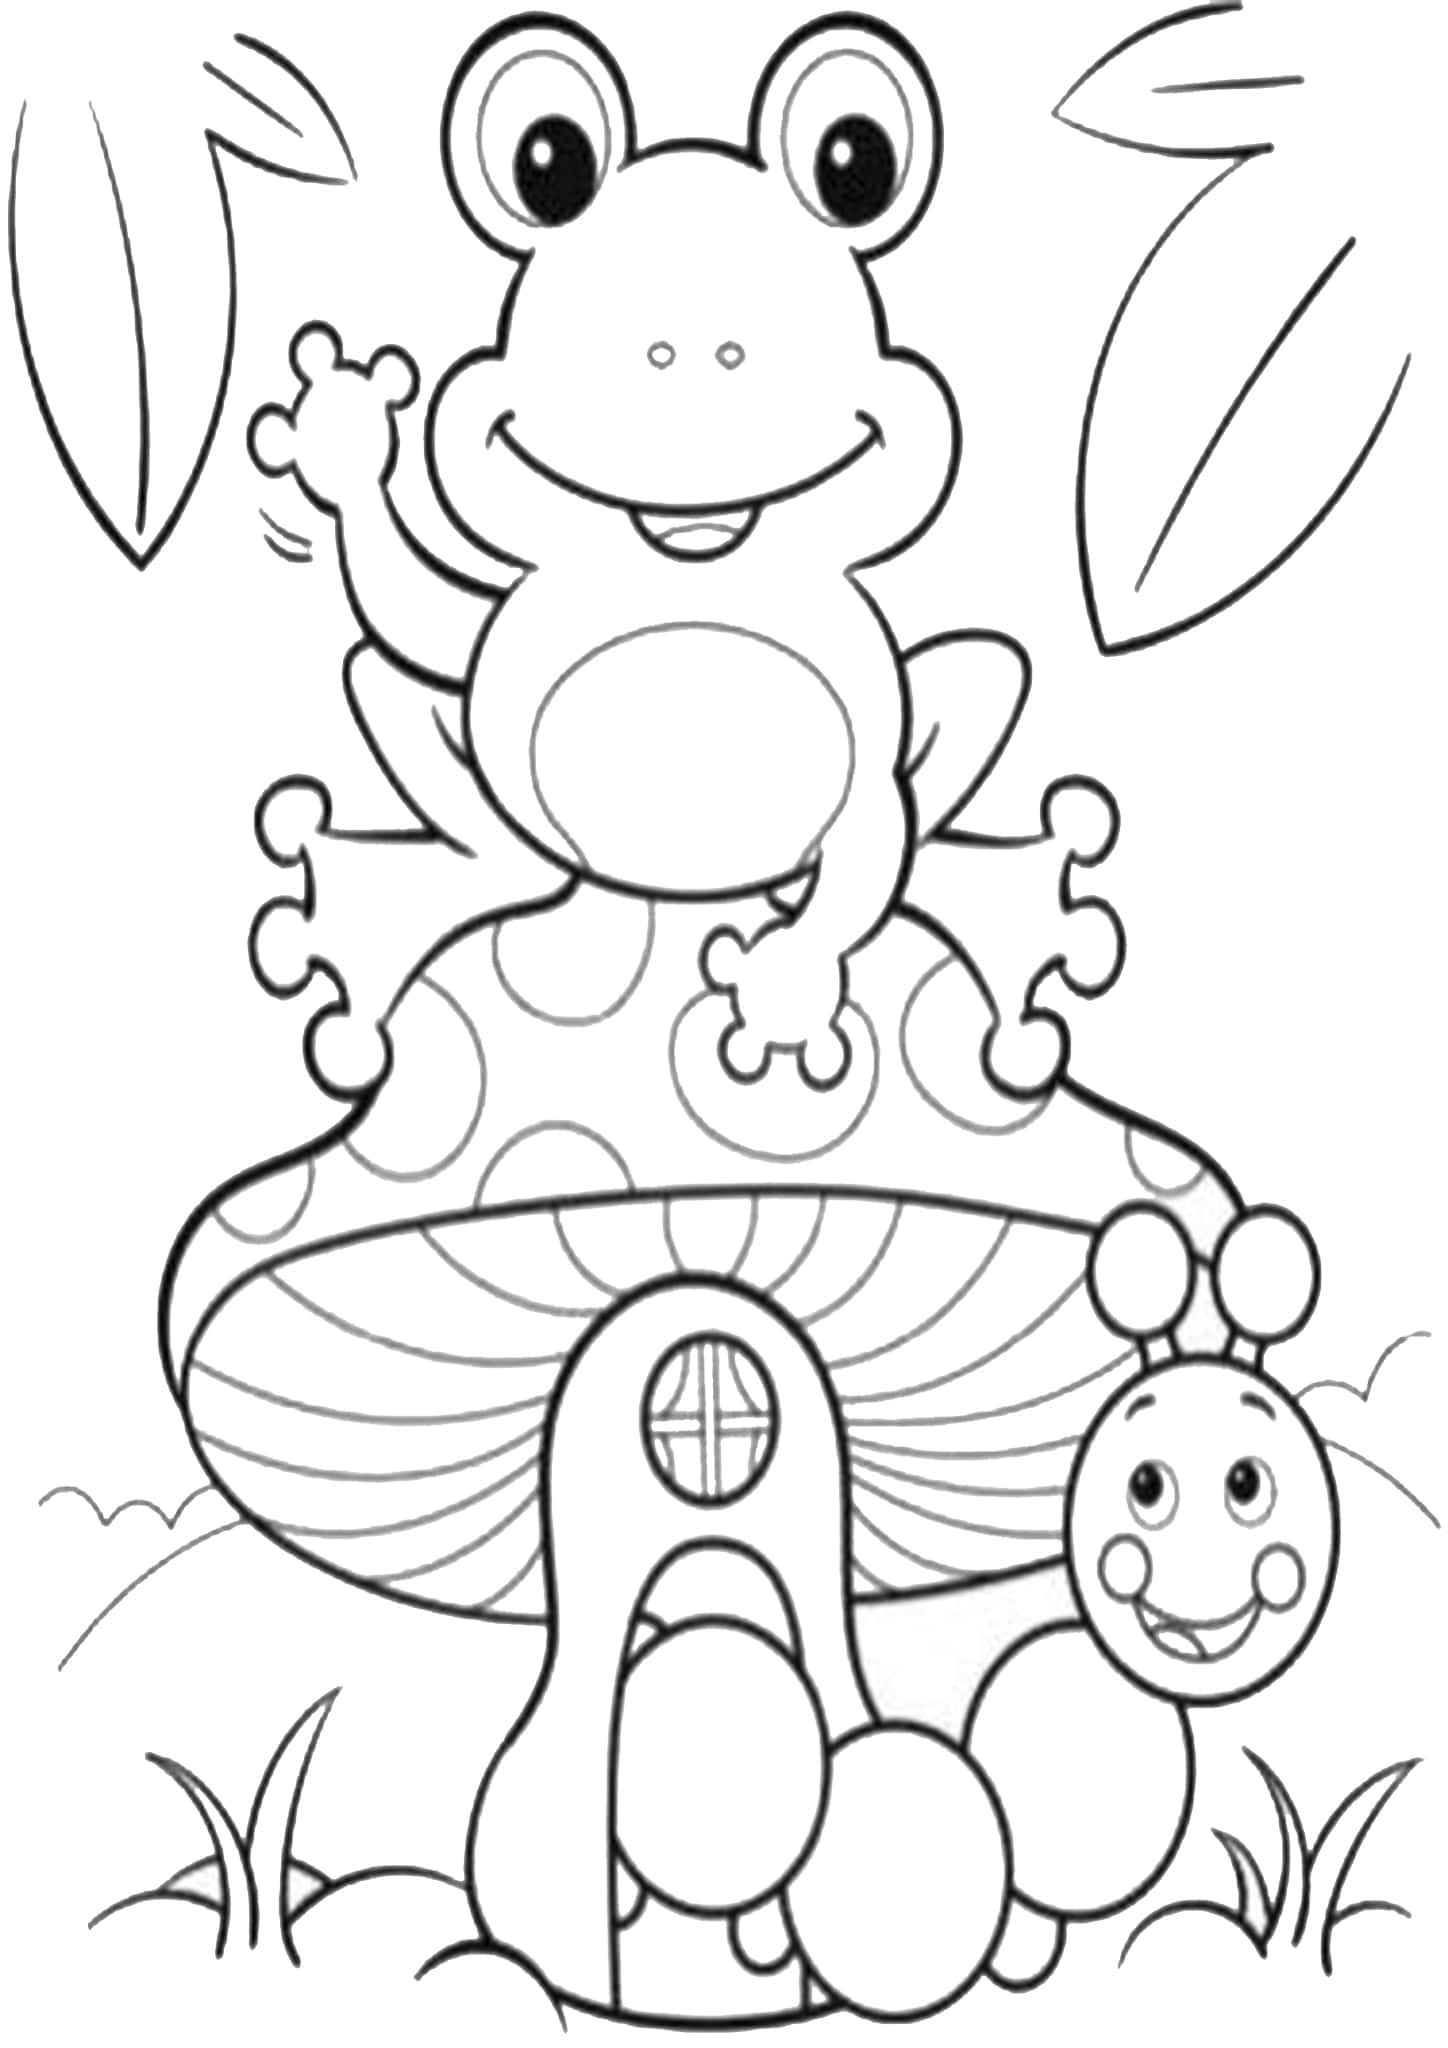 Free Easy To Print Frog Coloring Pages Frog Coloring Pages Spring Coloring Pages Free Coloring Pages [ 2048 x 1448 Pixel ]